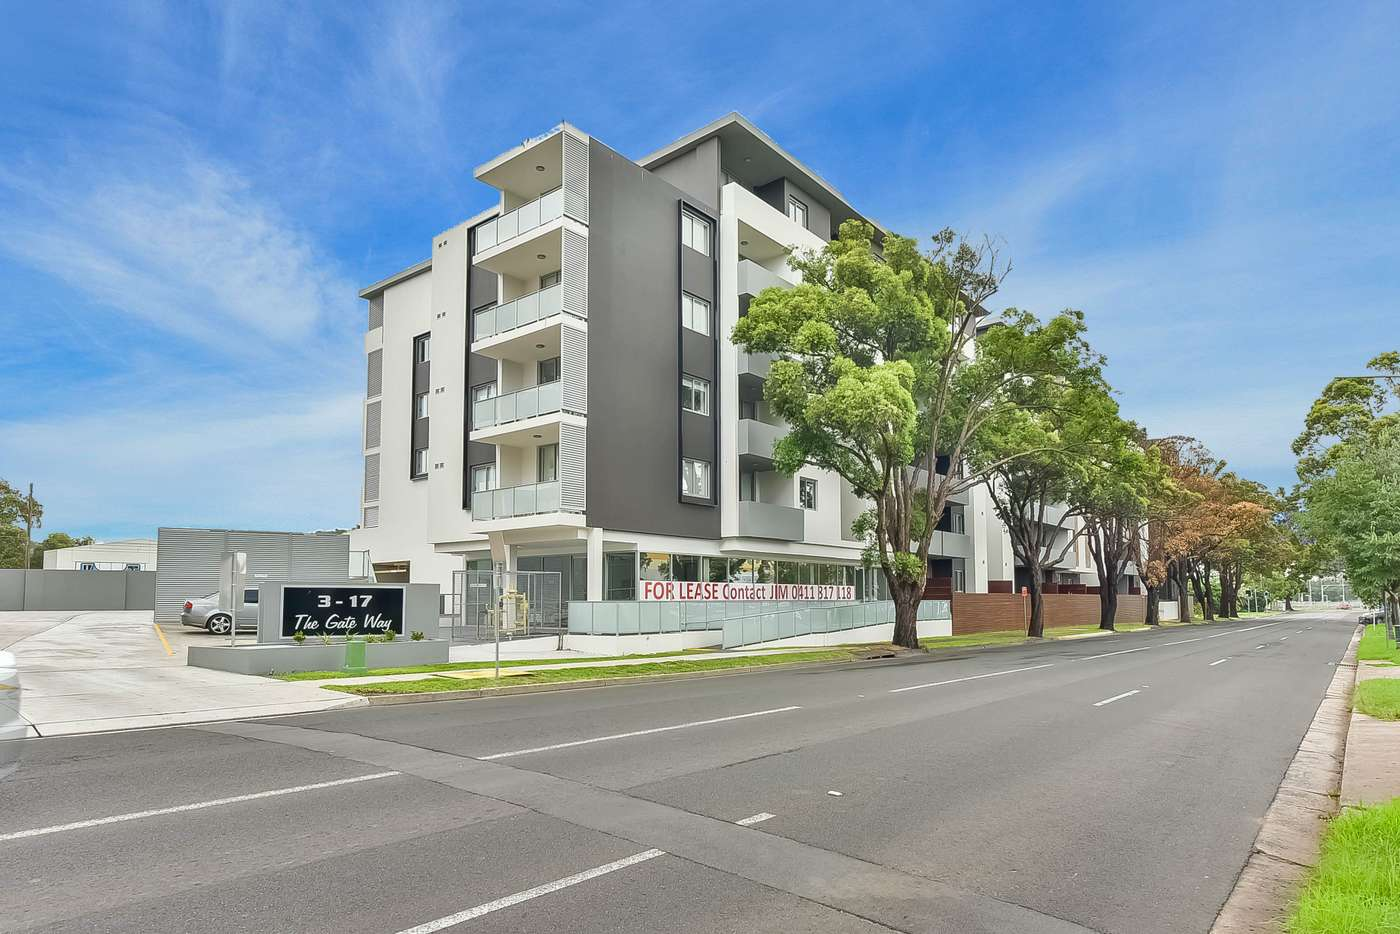 Main view of Homely apartment listing, 3-17 Queen Street, Campbelltown NSW 2560